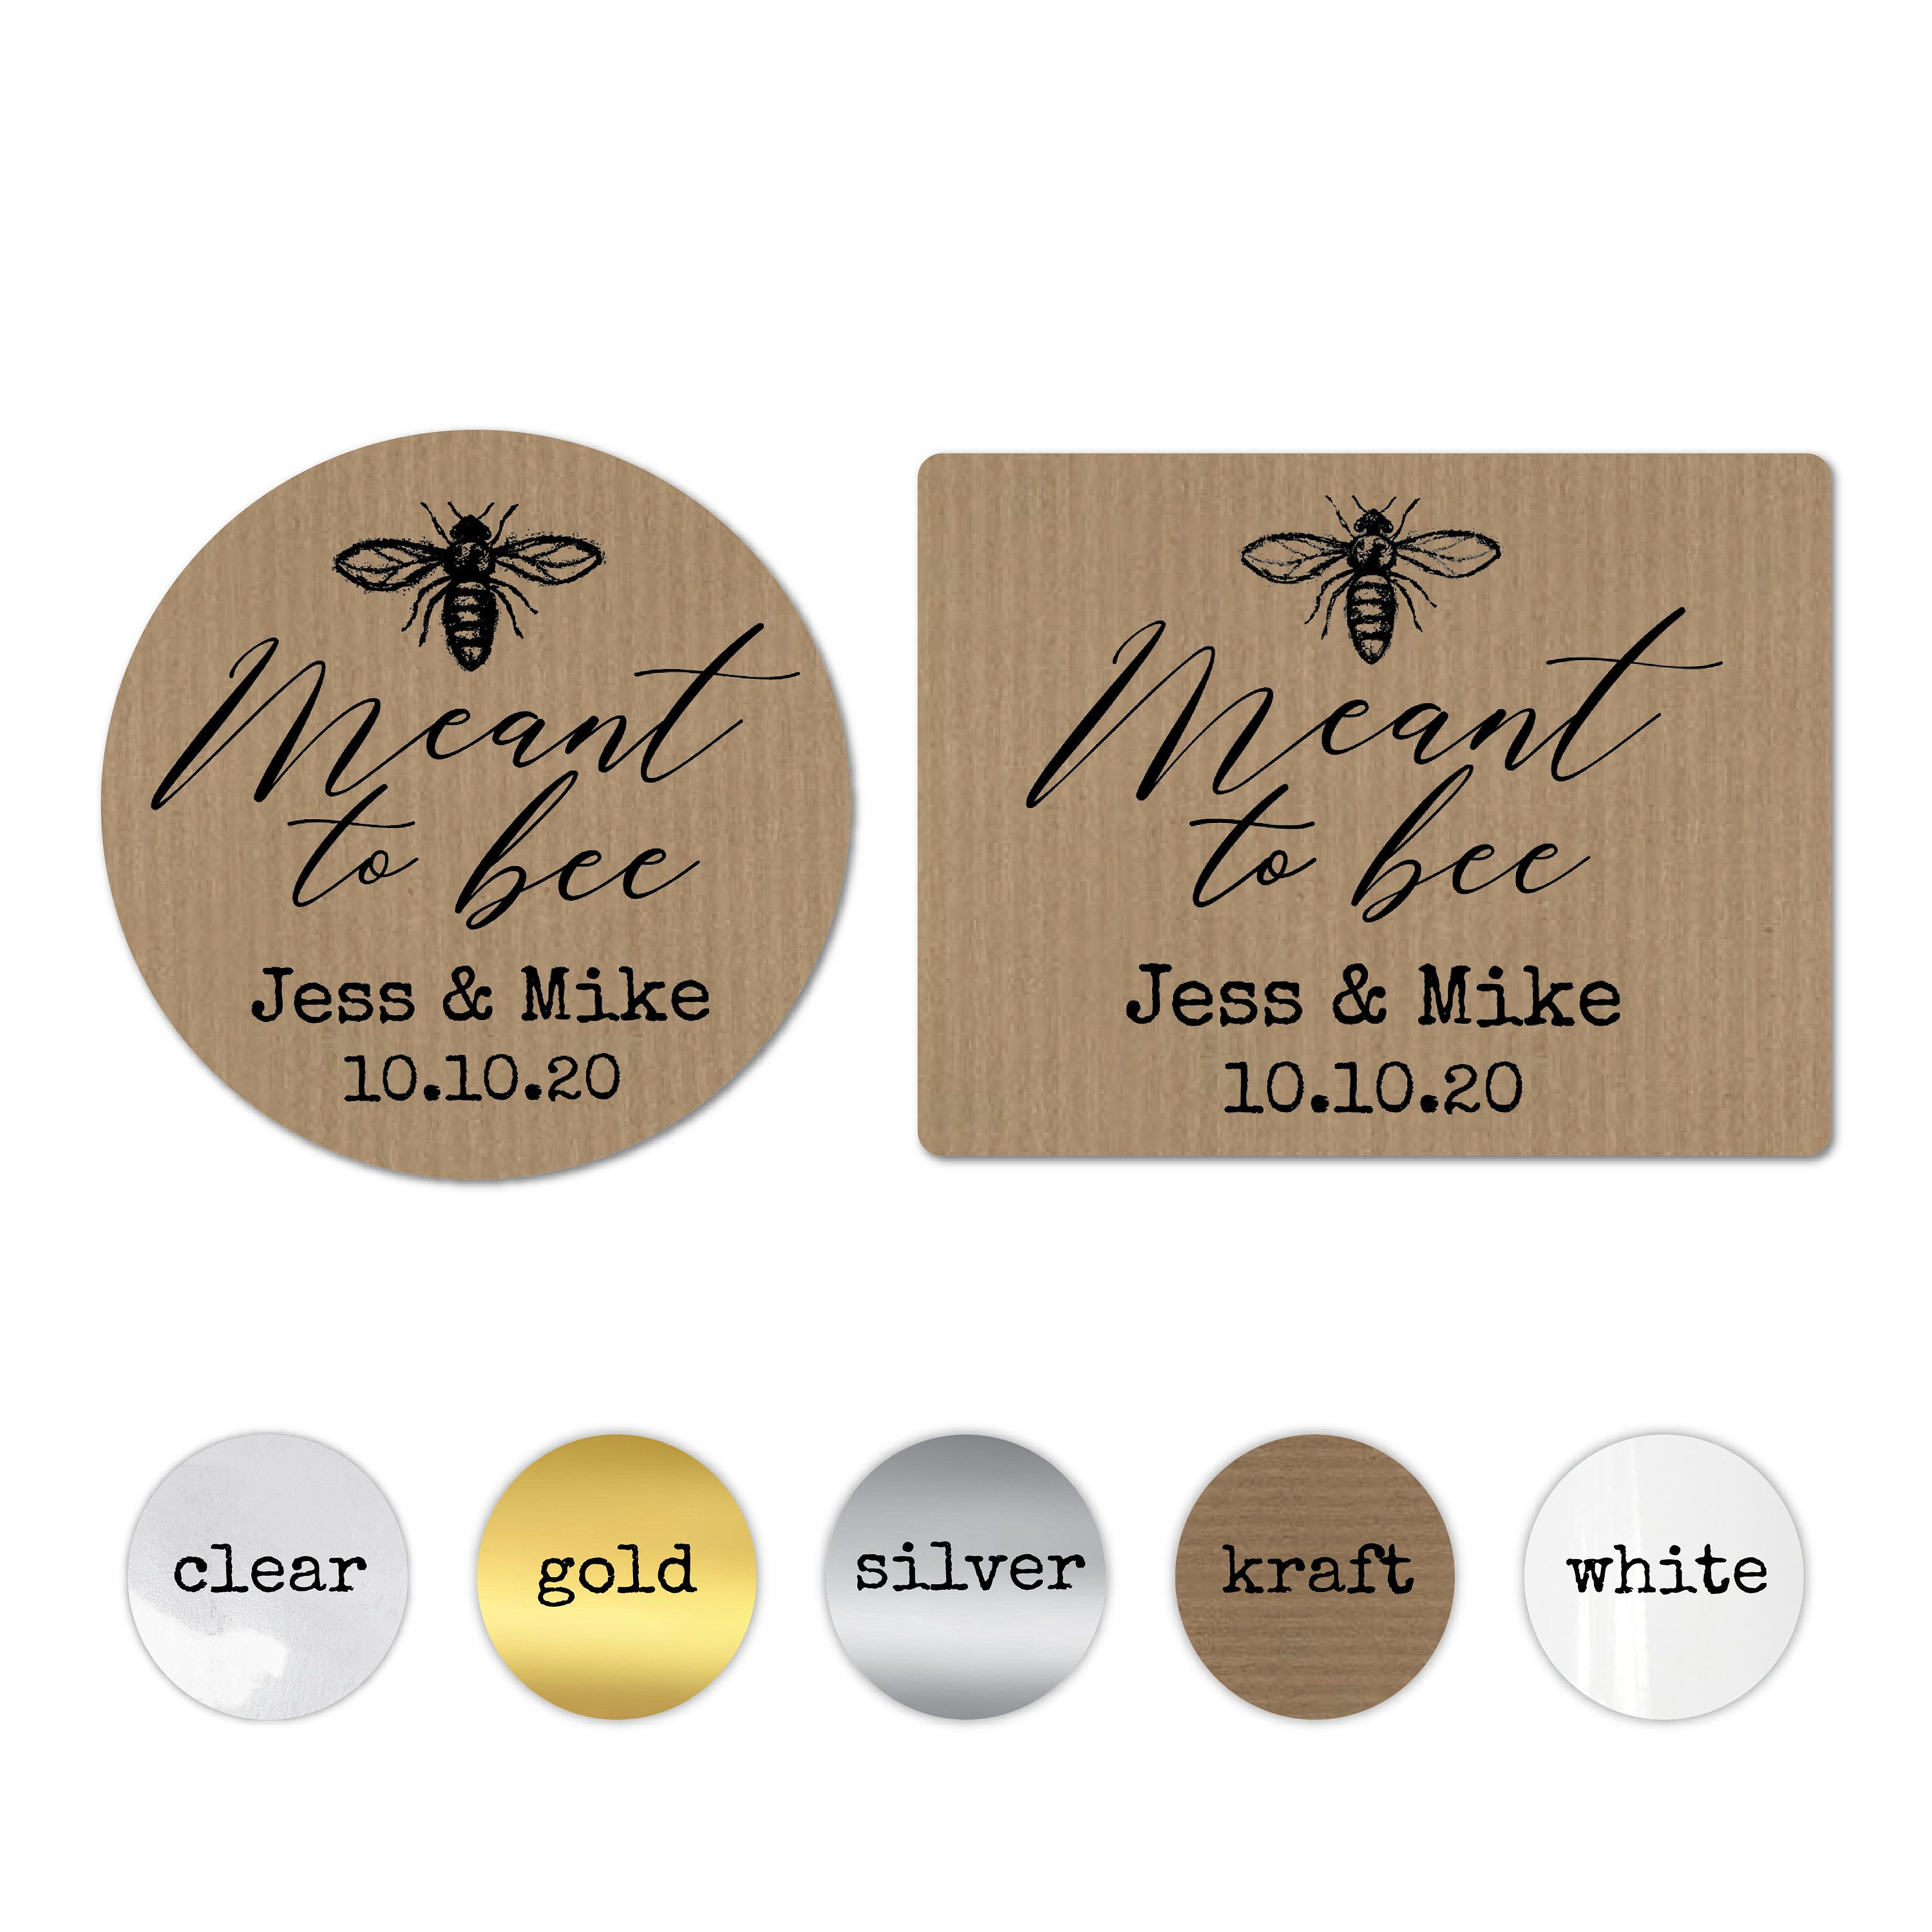 Meant to bee wedding favor stickers personalized bridal